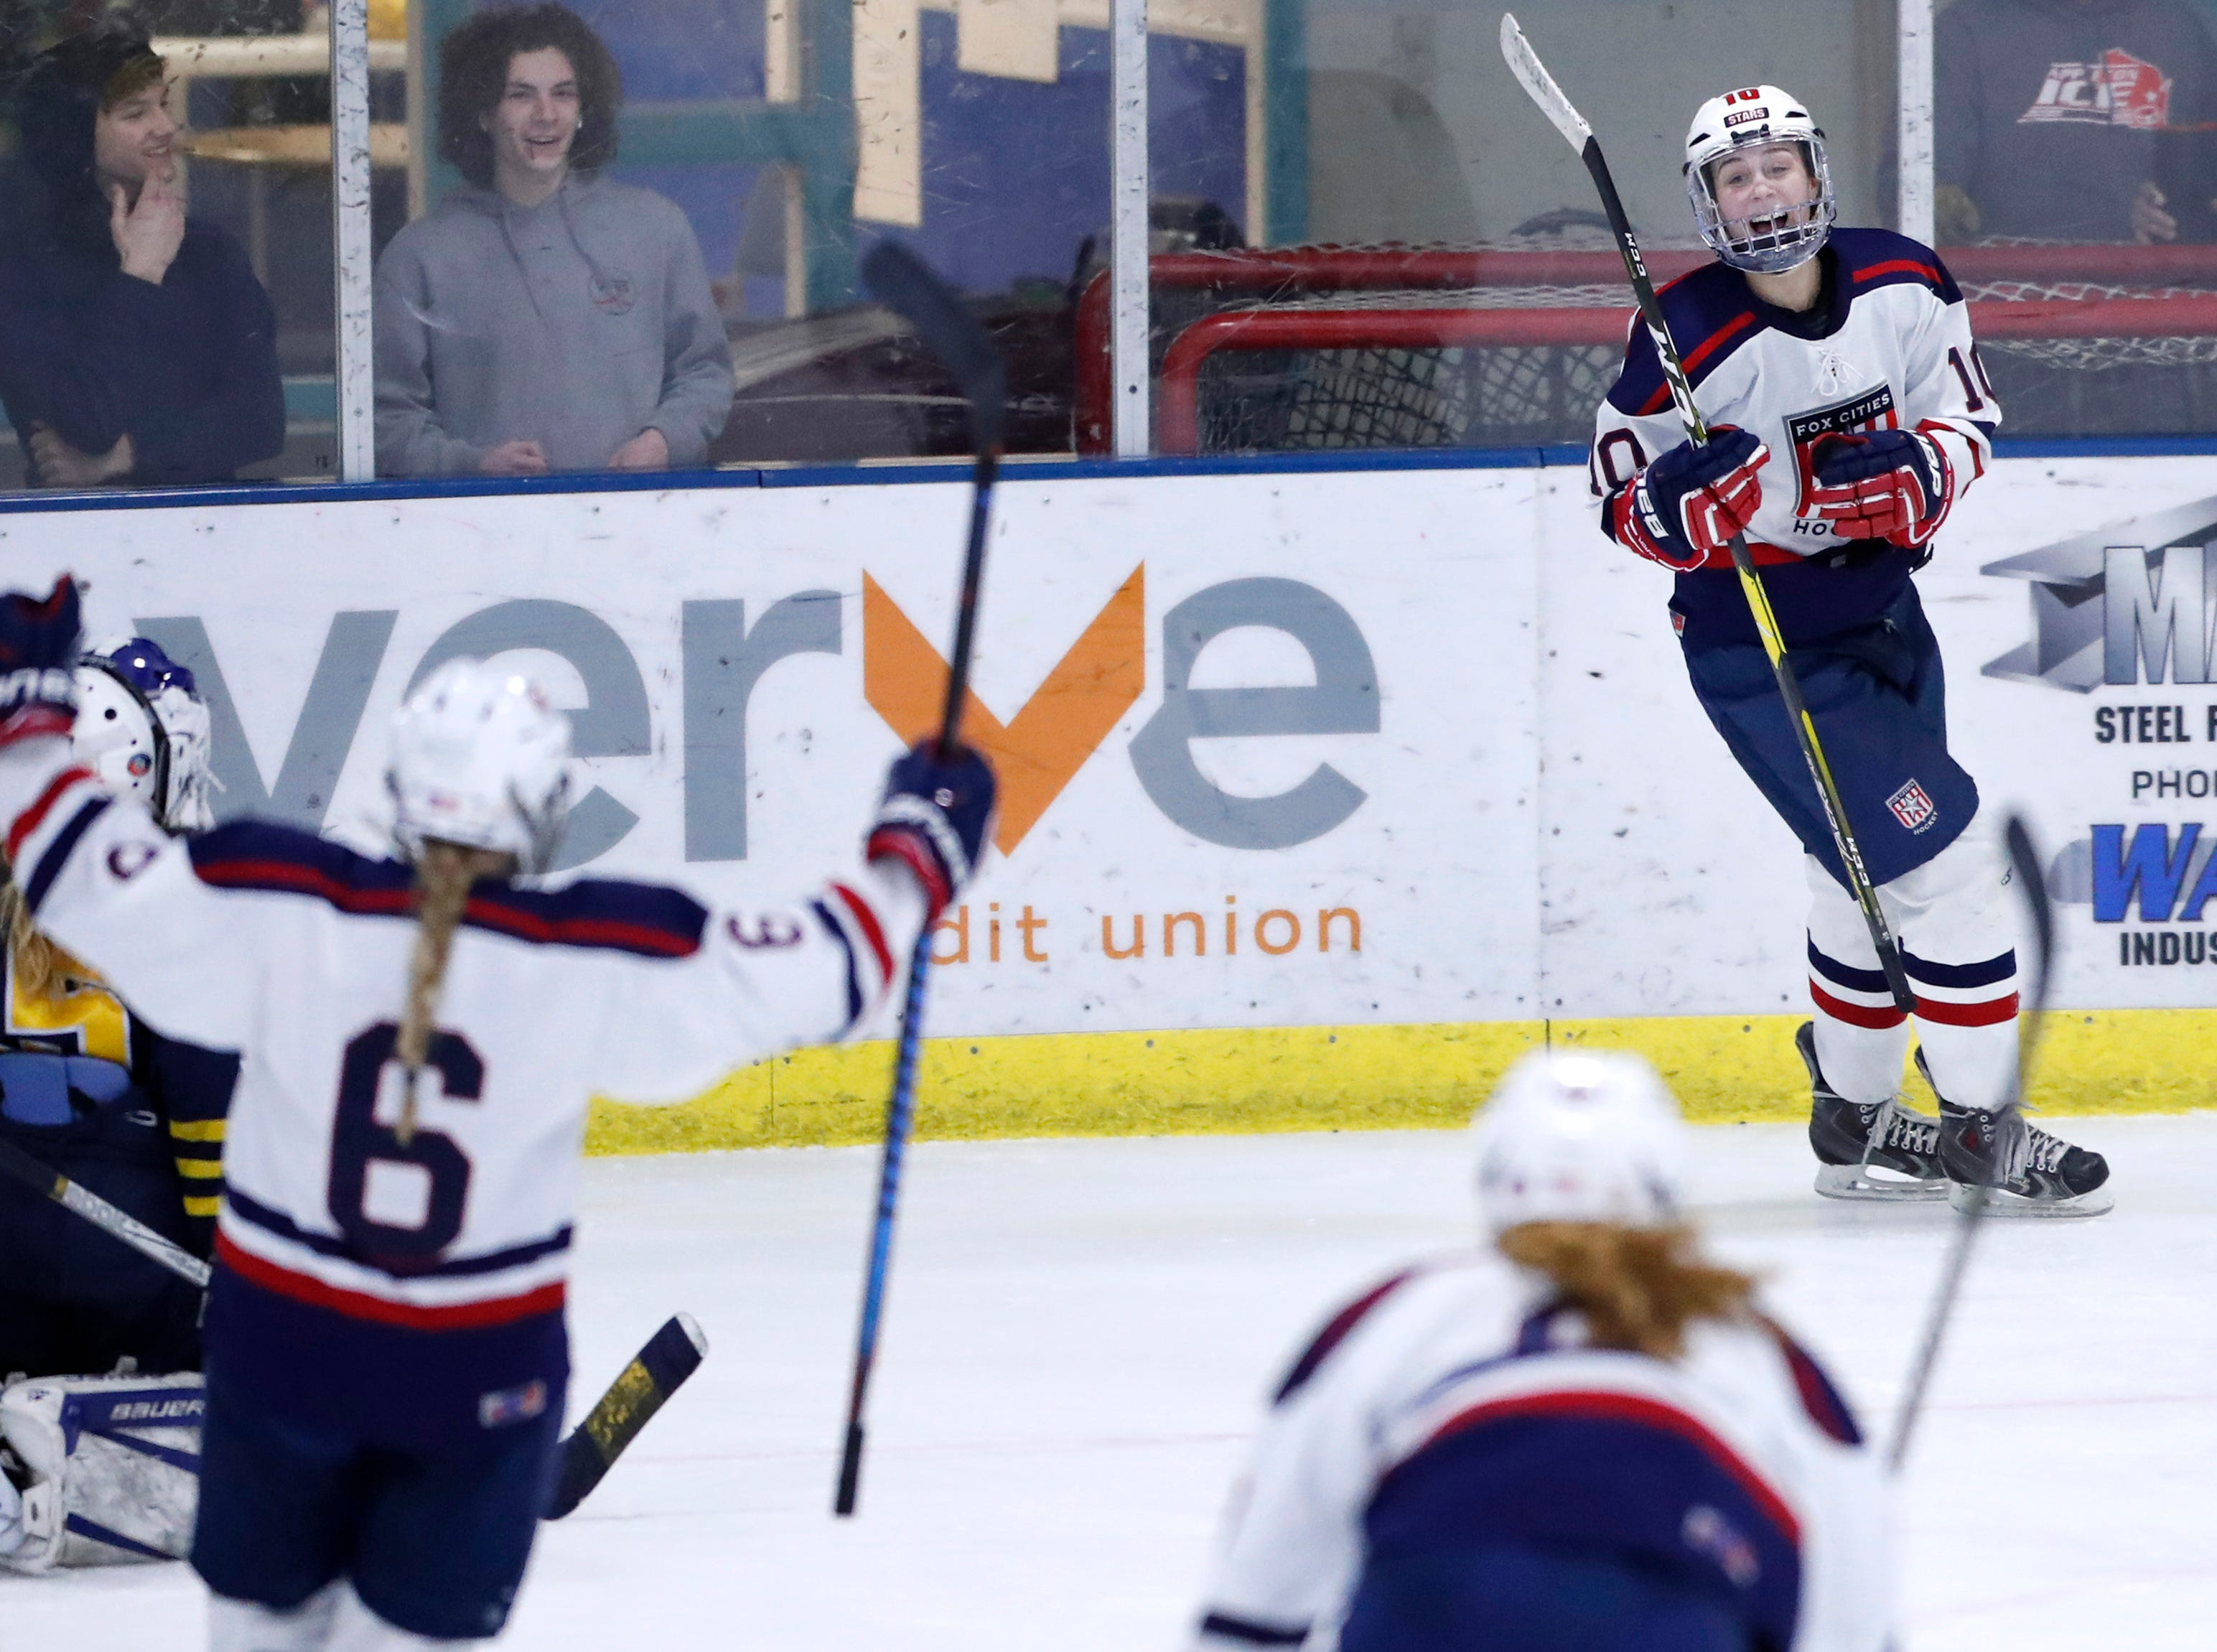 Fox Cities Stars' Madelynn Jablonski celebrates after scoring against University School Co-op during their sectional semifinal Tuesday, Feb. 19, 2019, at the Tri-County Ice Arena in Neenah, Wis.Danny Damiani/USA TODAY NETWORK-Wisconsin